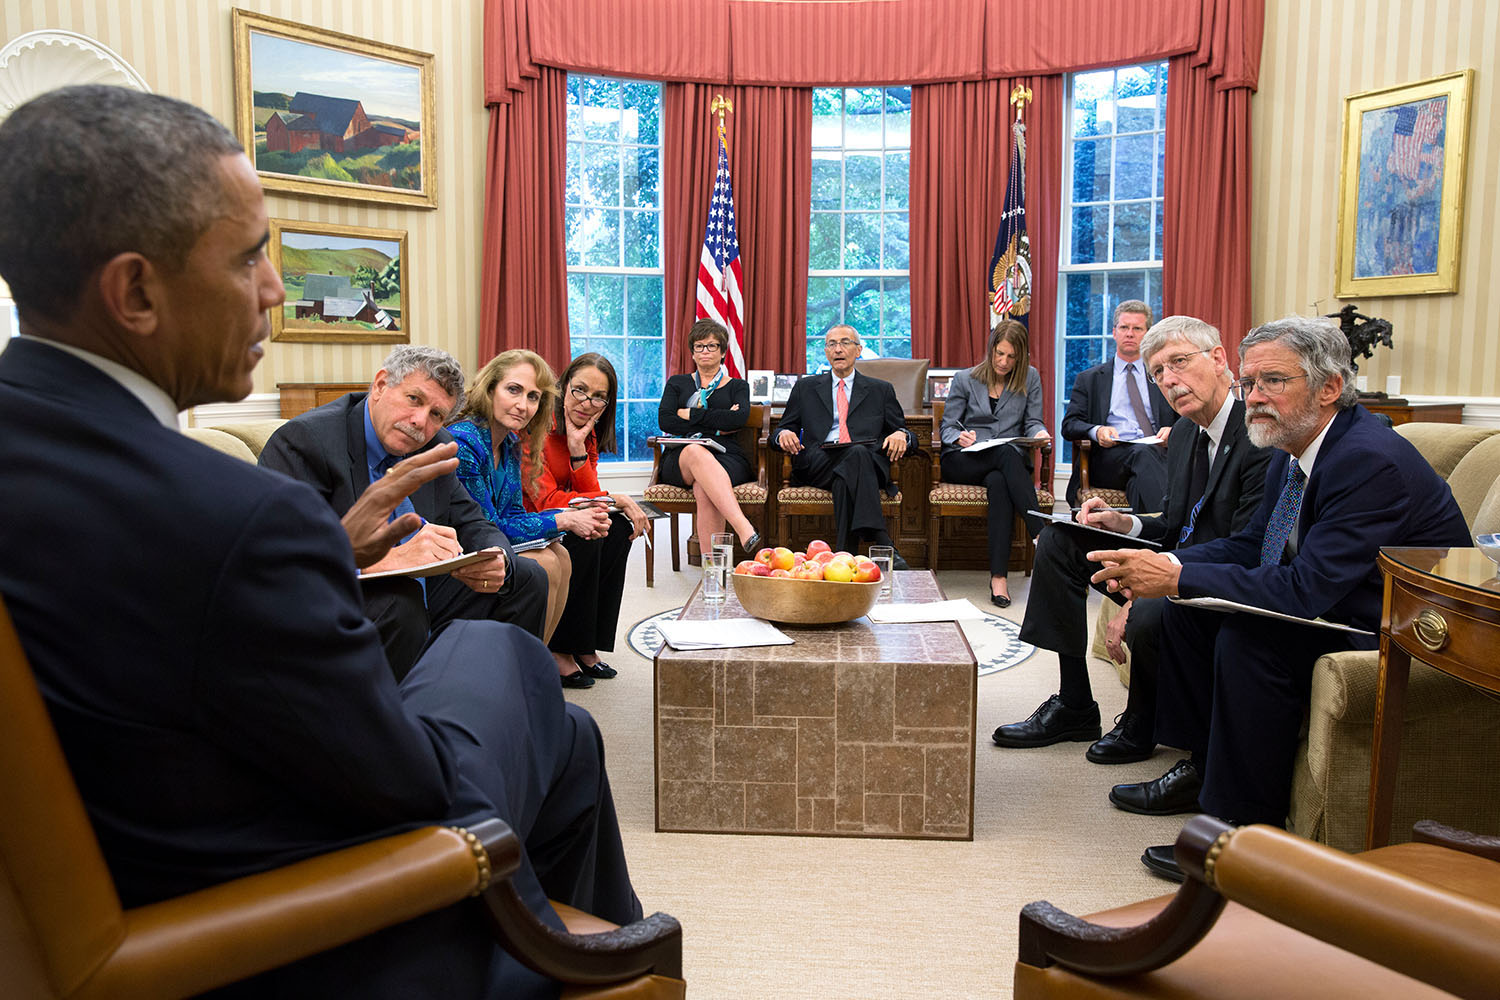 President Barack Obama holds a precision medicine meeting in the Oval Office, Oct. 3, 2014. Seated, from left, are: Eric Lander, Co-Chair, President's Council of Advisors on Science and Technology; Jo Handelsman, Associate Director for Science, Office of Science and Technology Policy; Margaret Hamburg, FDA Commissioner; Senior Advisor Valerie Jarrett; John Podesta, Counselor to the President; Health and Human Services Secretary Sylvia Mathews Burwell; Shaun Donovan, Director, Office of Management and Budget; Francis Collins, Director, National Institutes of Health; and Dr. John Holdren, Director of the Office of Science and Technology Policy. (Official White House Photo by Pete Souza) This official White House photograph is being made available only for publication by news organizations and/or for personal use printing by the subject(s) of the photograph. The photograph may not be manipulated in any way and may not be used in commercial or political materials, advertisements, emails, products, promotions that in any way suggests approval or endorsement of the President, the First Family, or the White House.